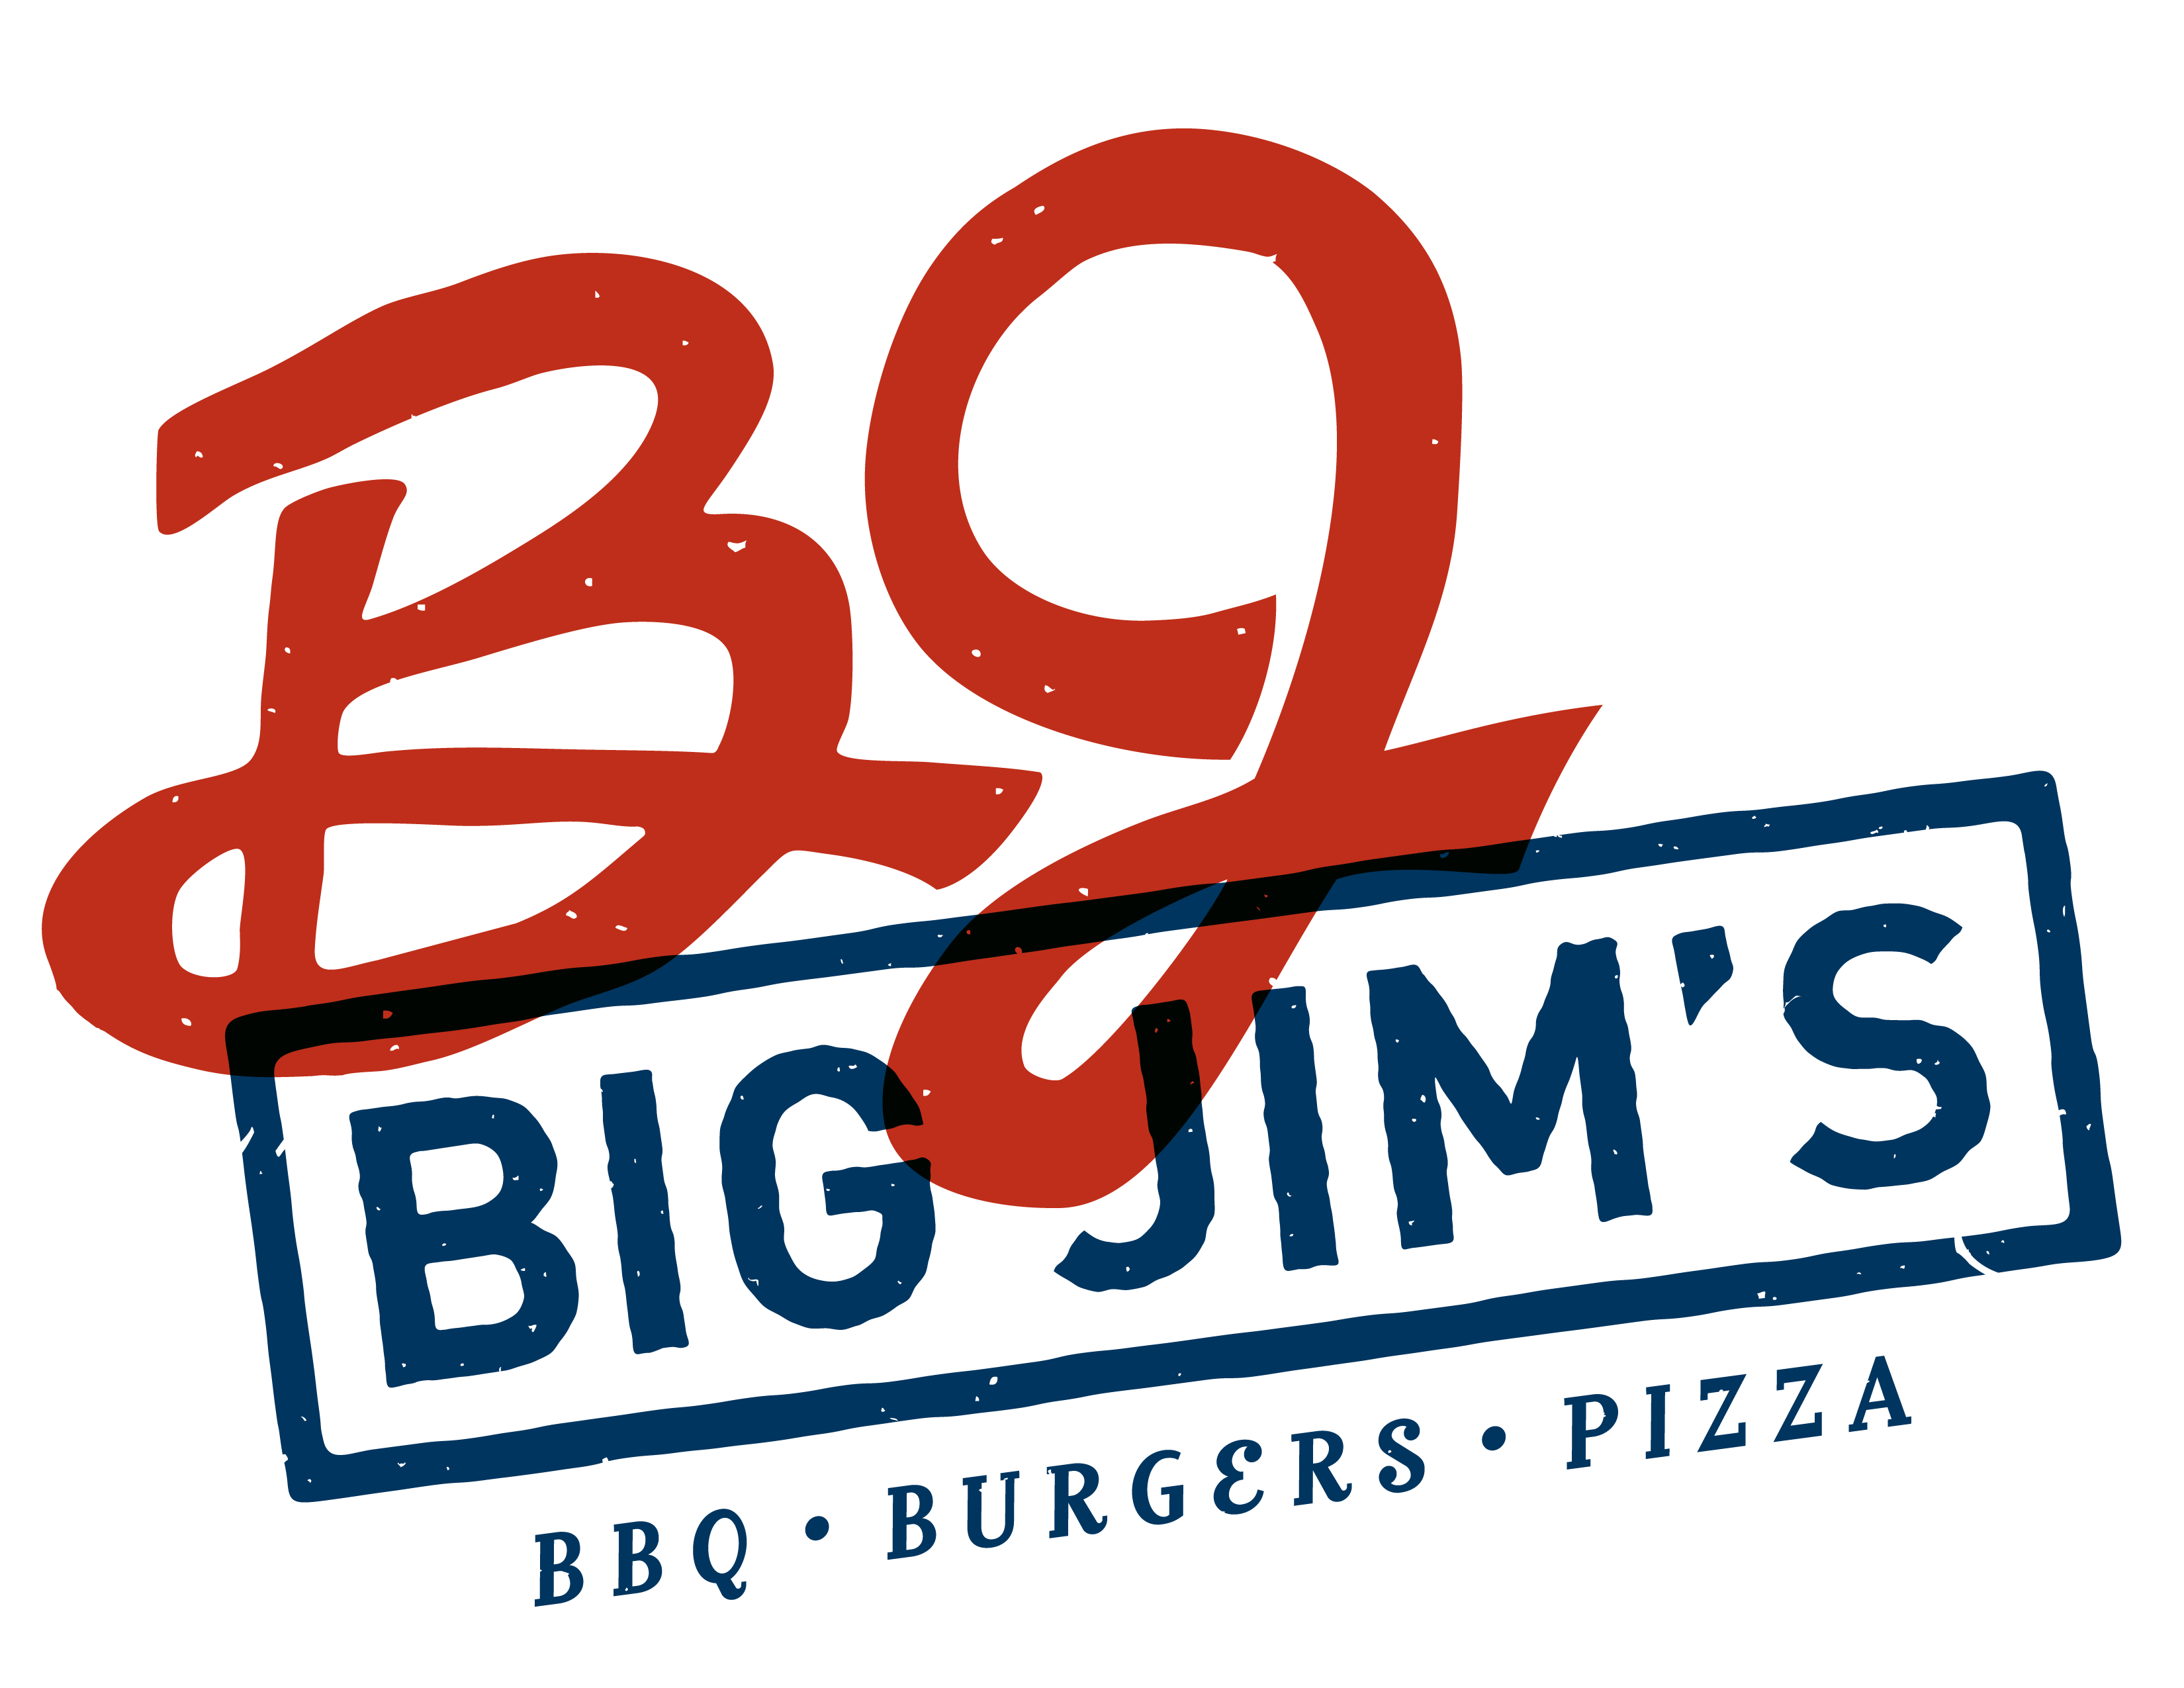 Big Jim's BBQ, Burgers & Pizza